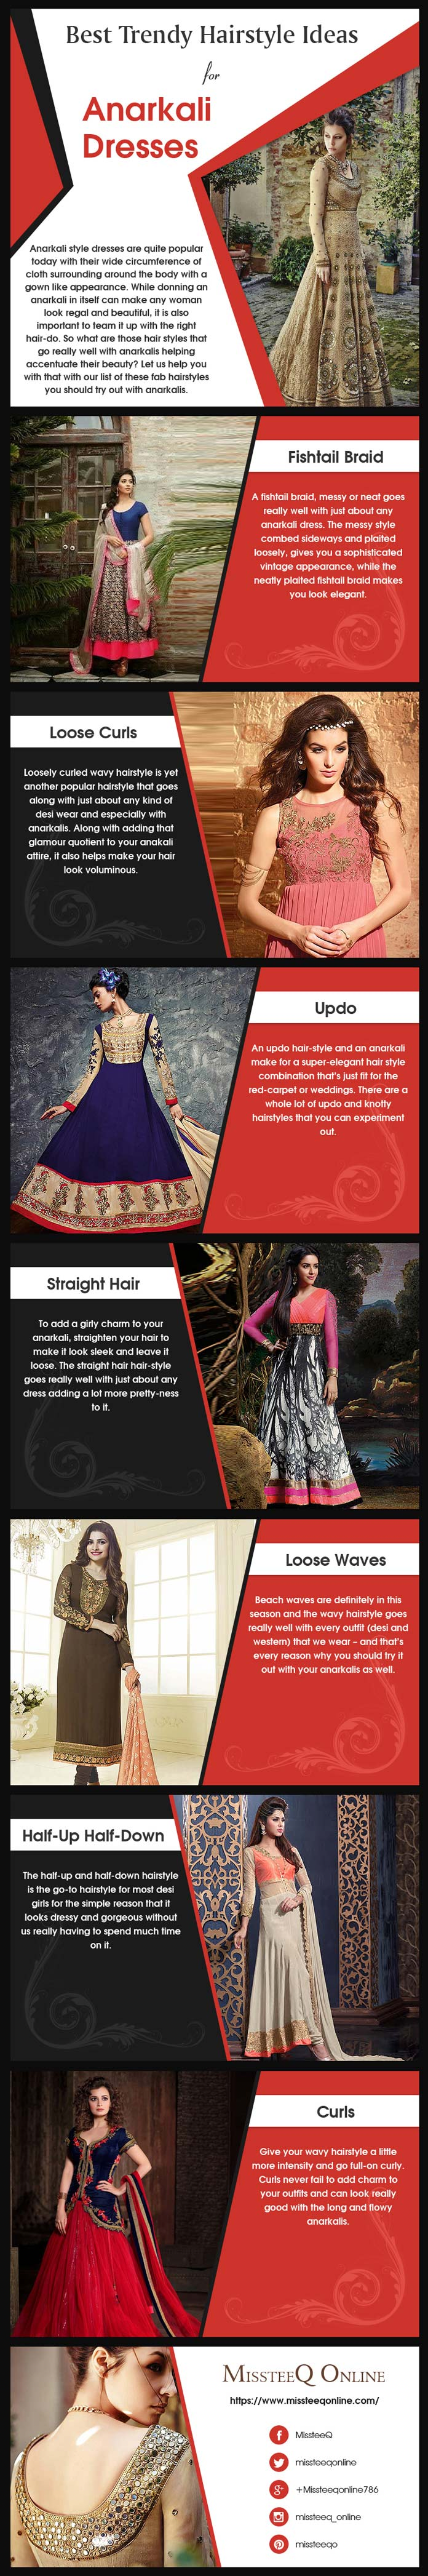 Best Trendy Hairstyle Ideas for Anarkali Dresses [Infographic]